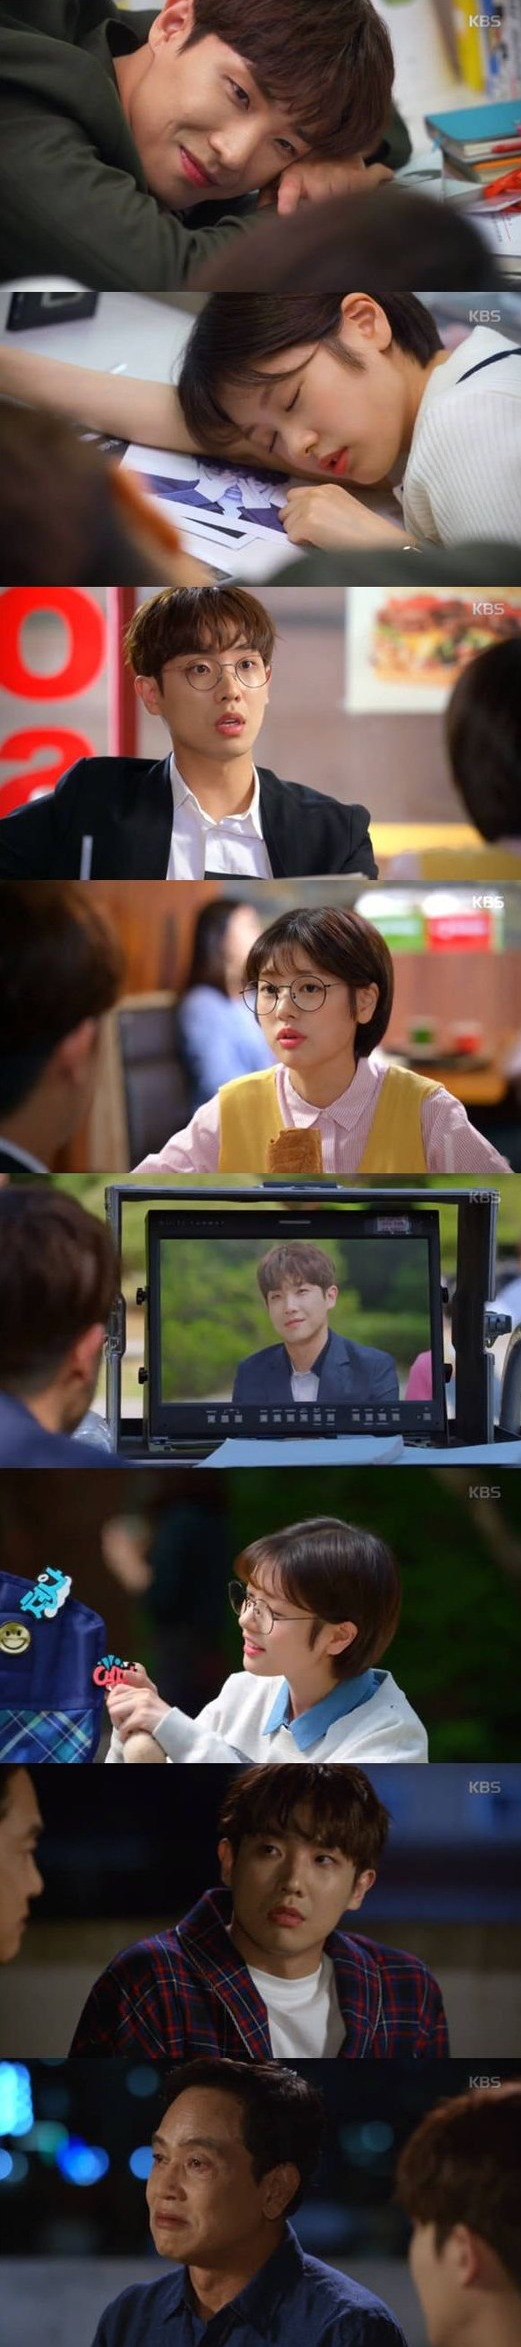 [Spoiler] Added episode 30 captures for the Korean drama 'Father is Strange'